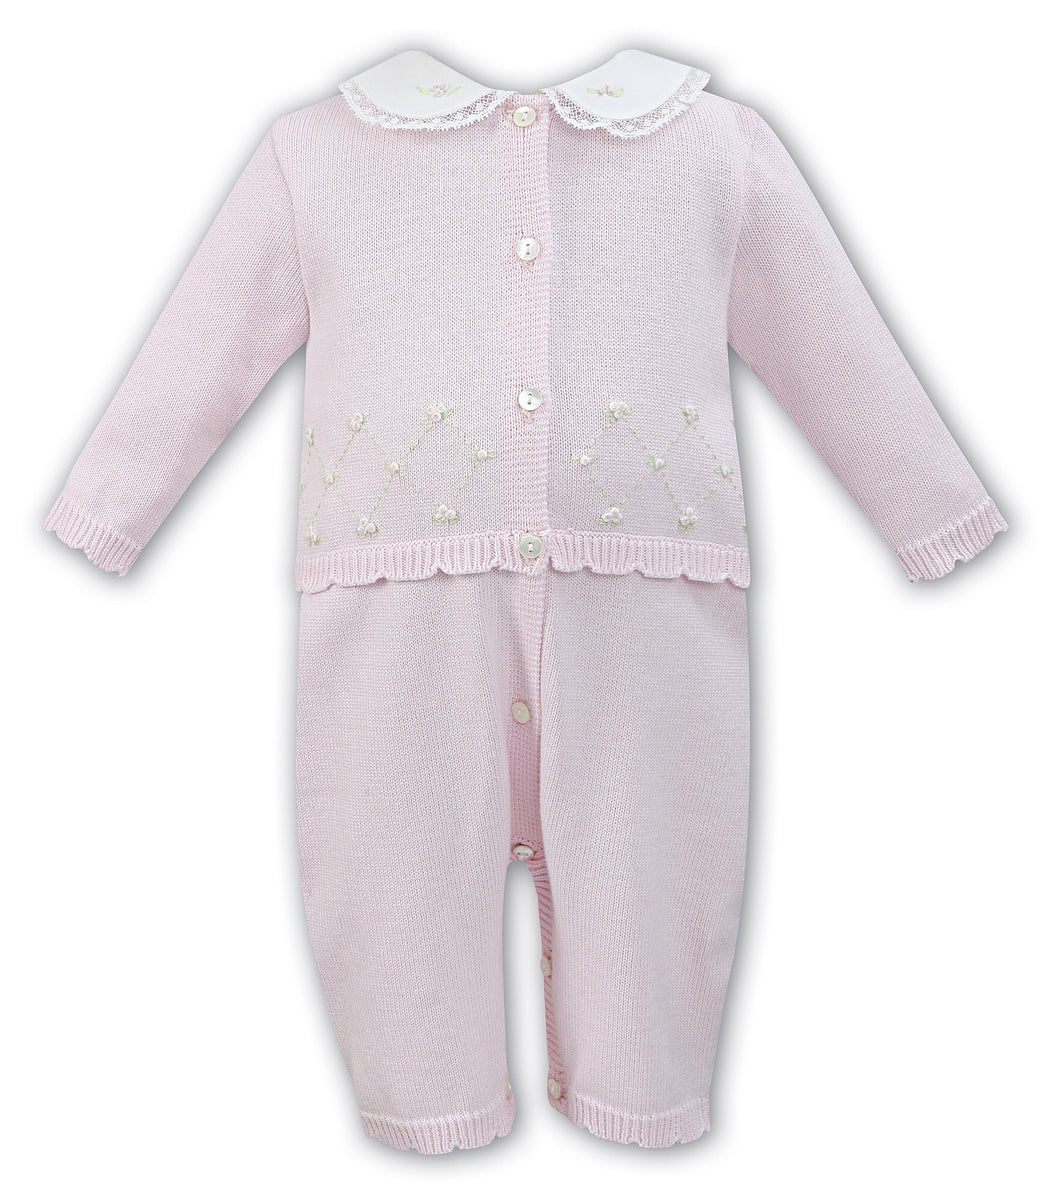 Baby Girls Knitted 2 Piece Leggings /Top Set with Embroidered Detail, Delicate Cotton and Lace Peter Pan Collar